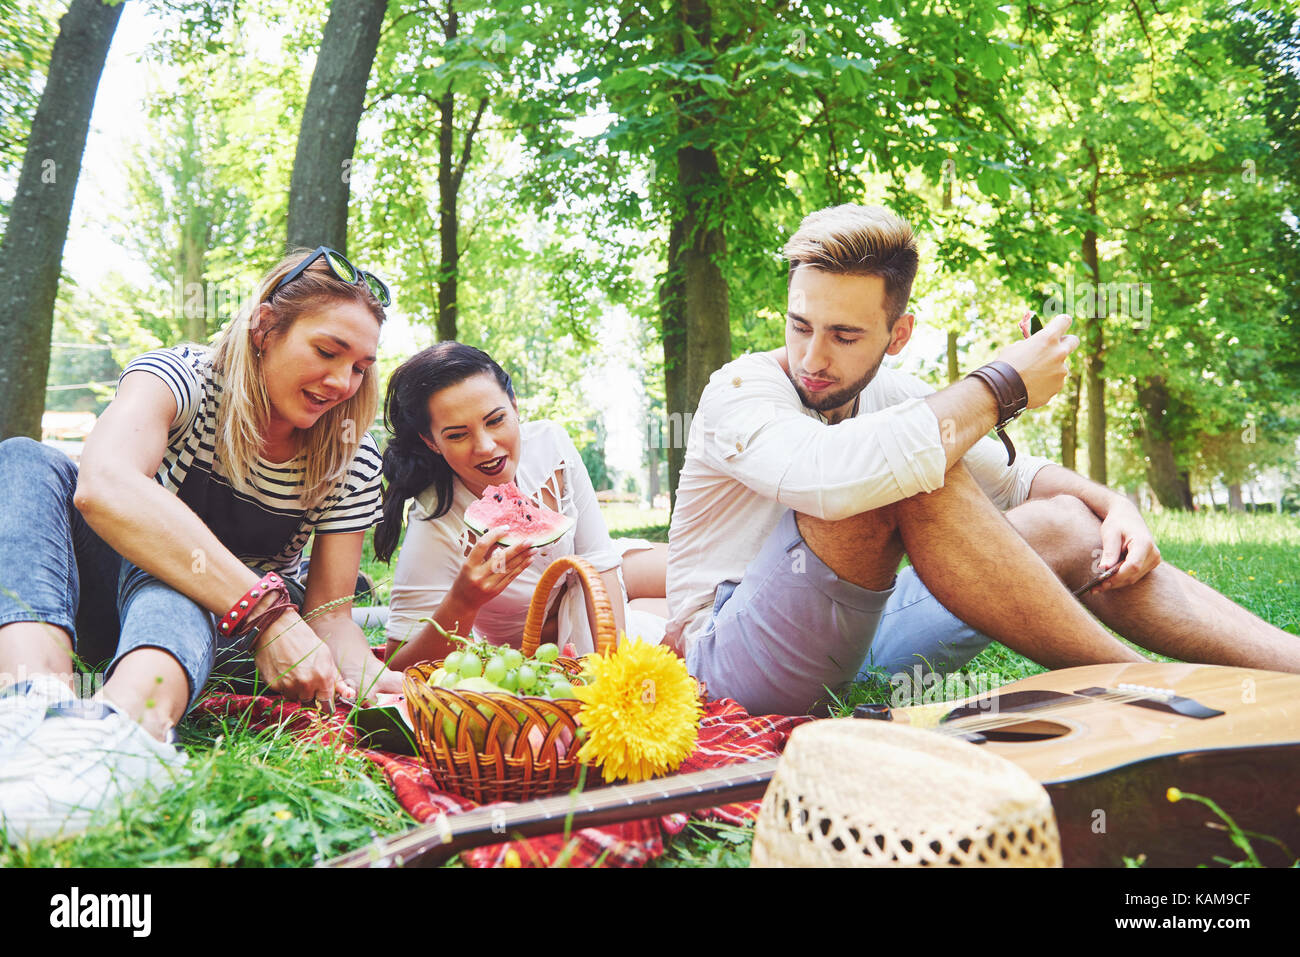 Group of friends having pic-nic in a park on a sunny day - People hanging out, having fun while grilling and relaxing - Stock Image